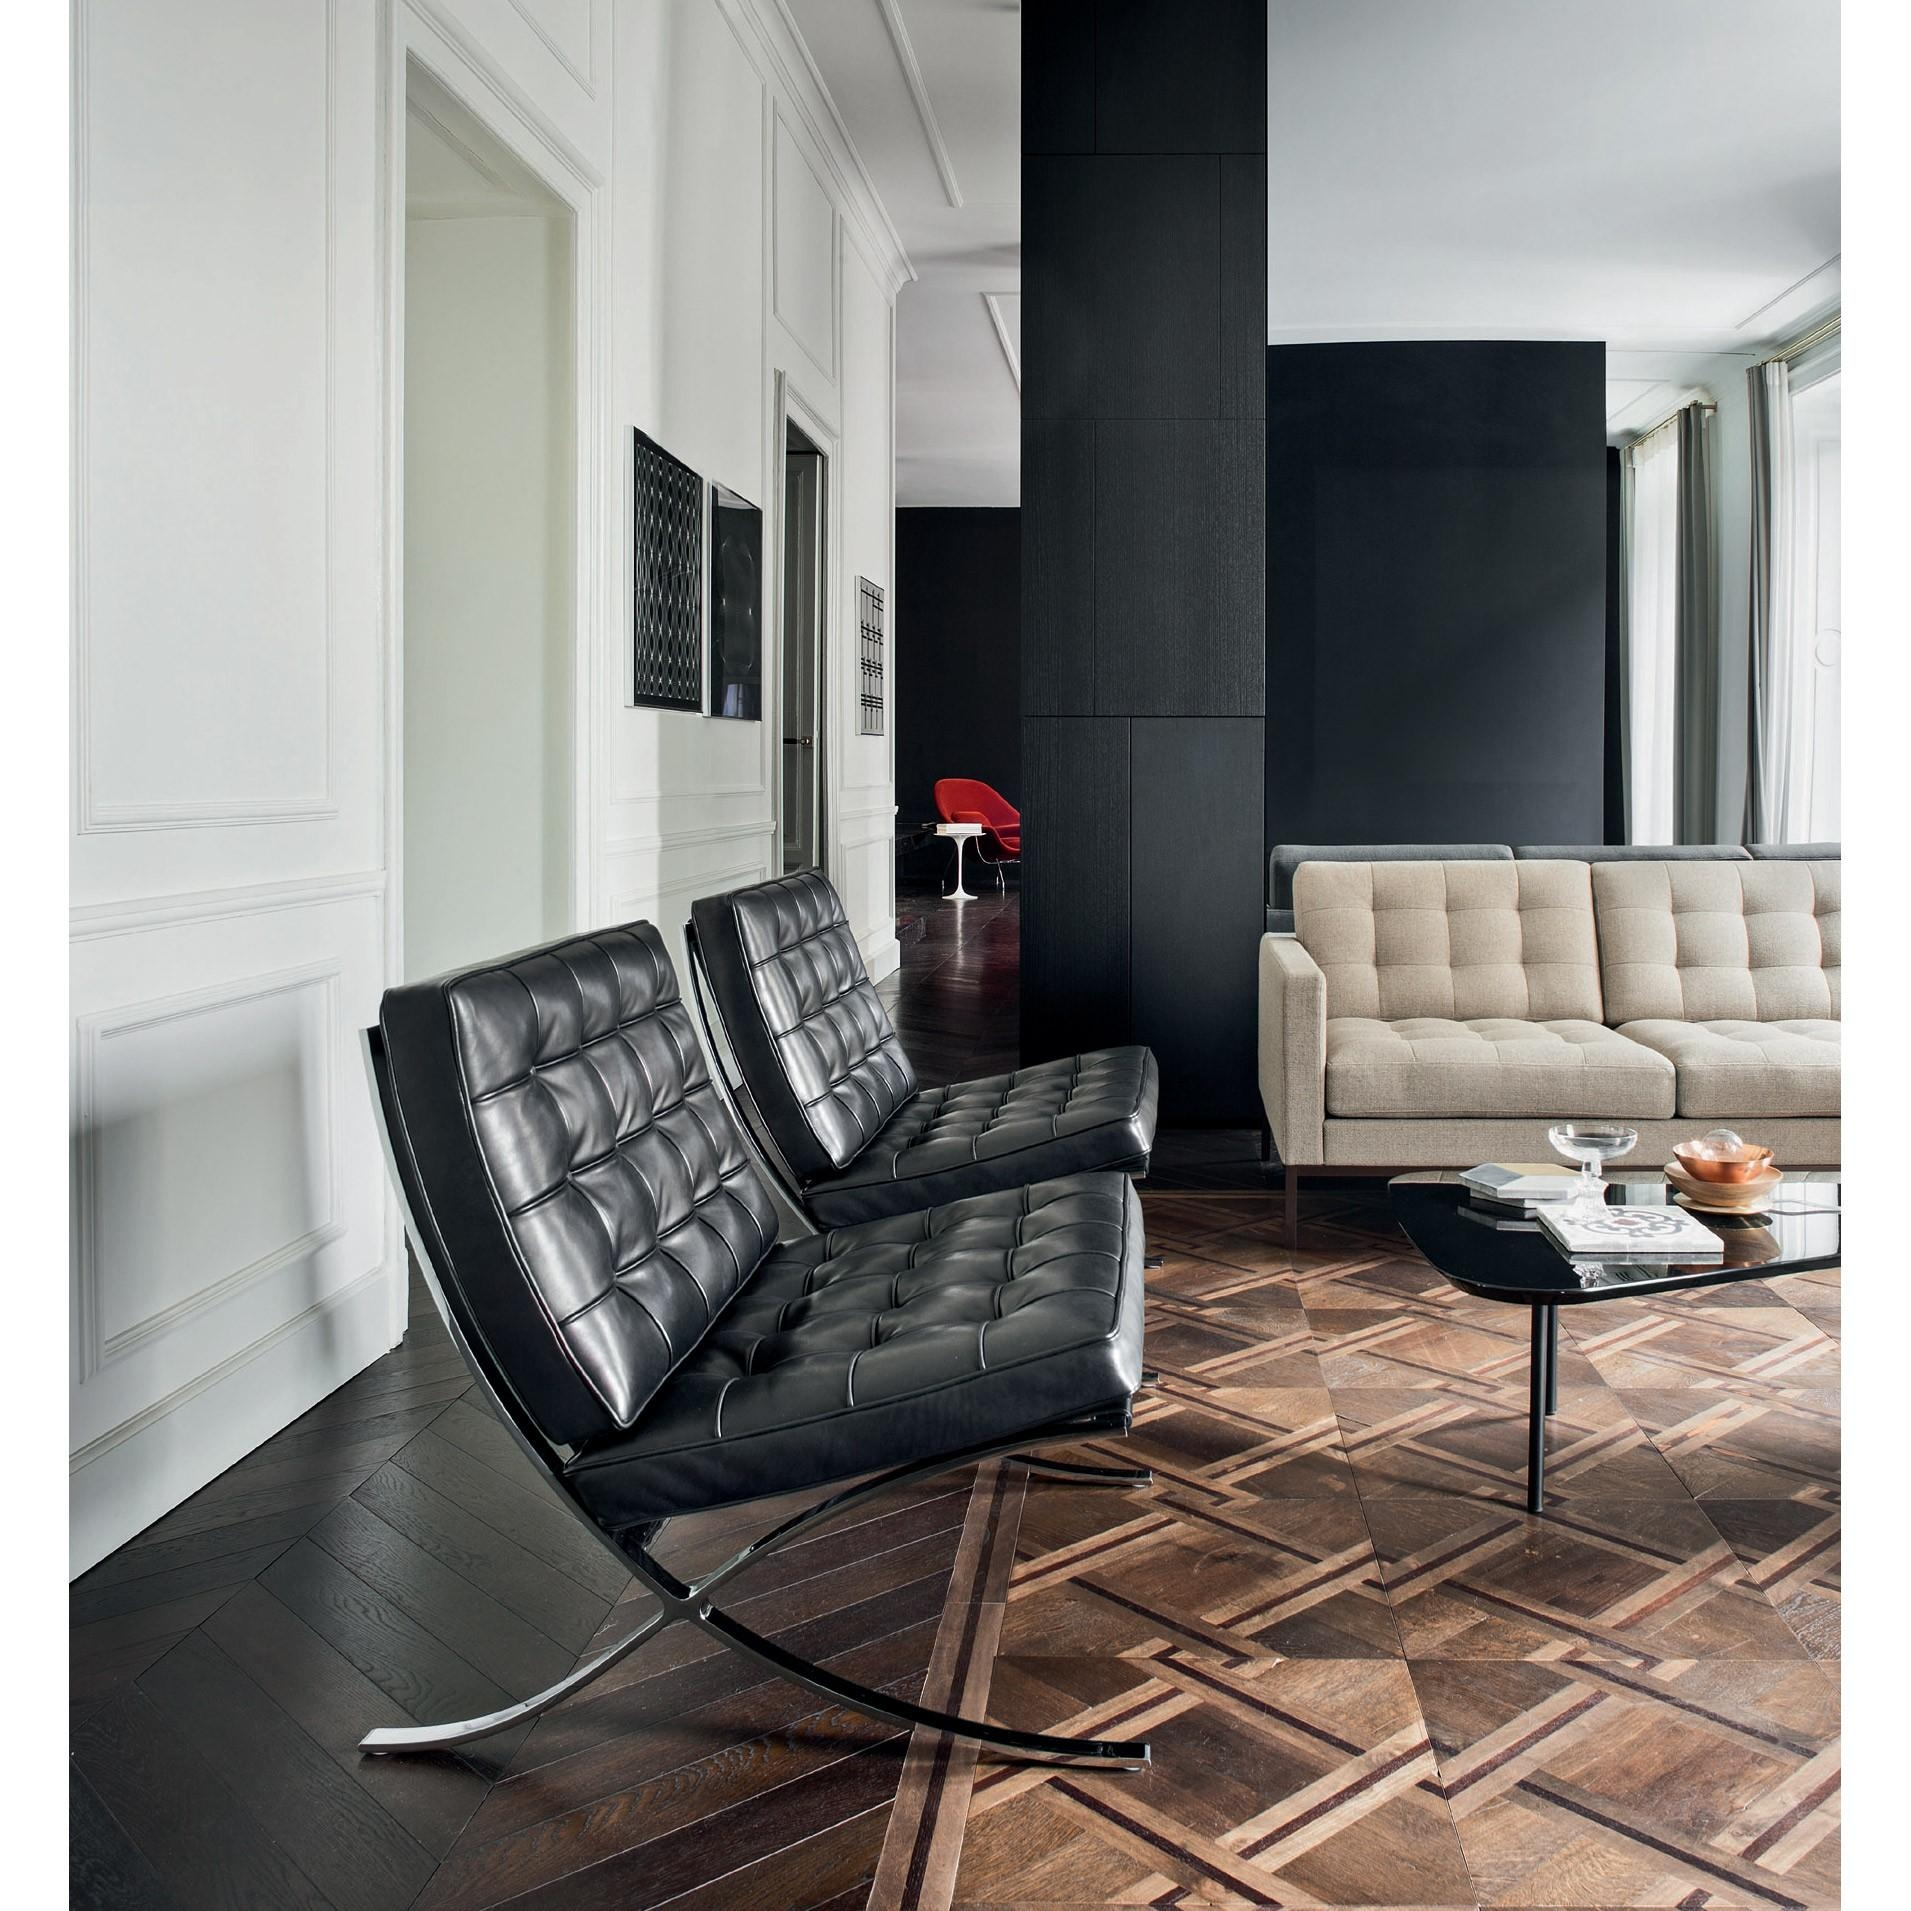 Sofas Center : 38 Amazing Florence Knoll Sofa Photo Concept Inside Florence Knoll Living Room Sofas (View 7 of 20)